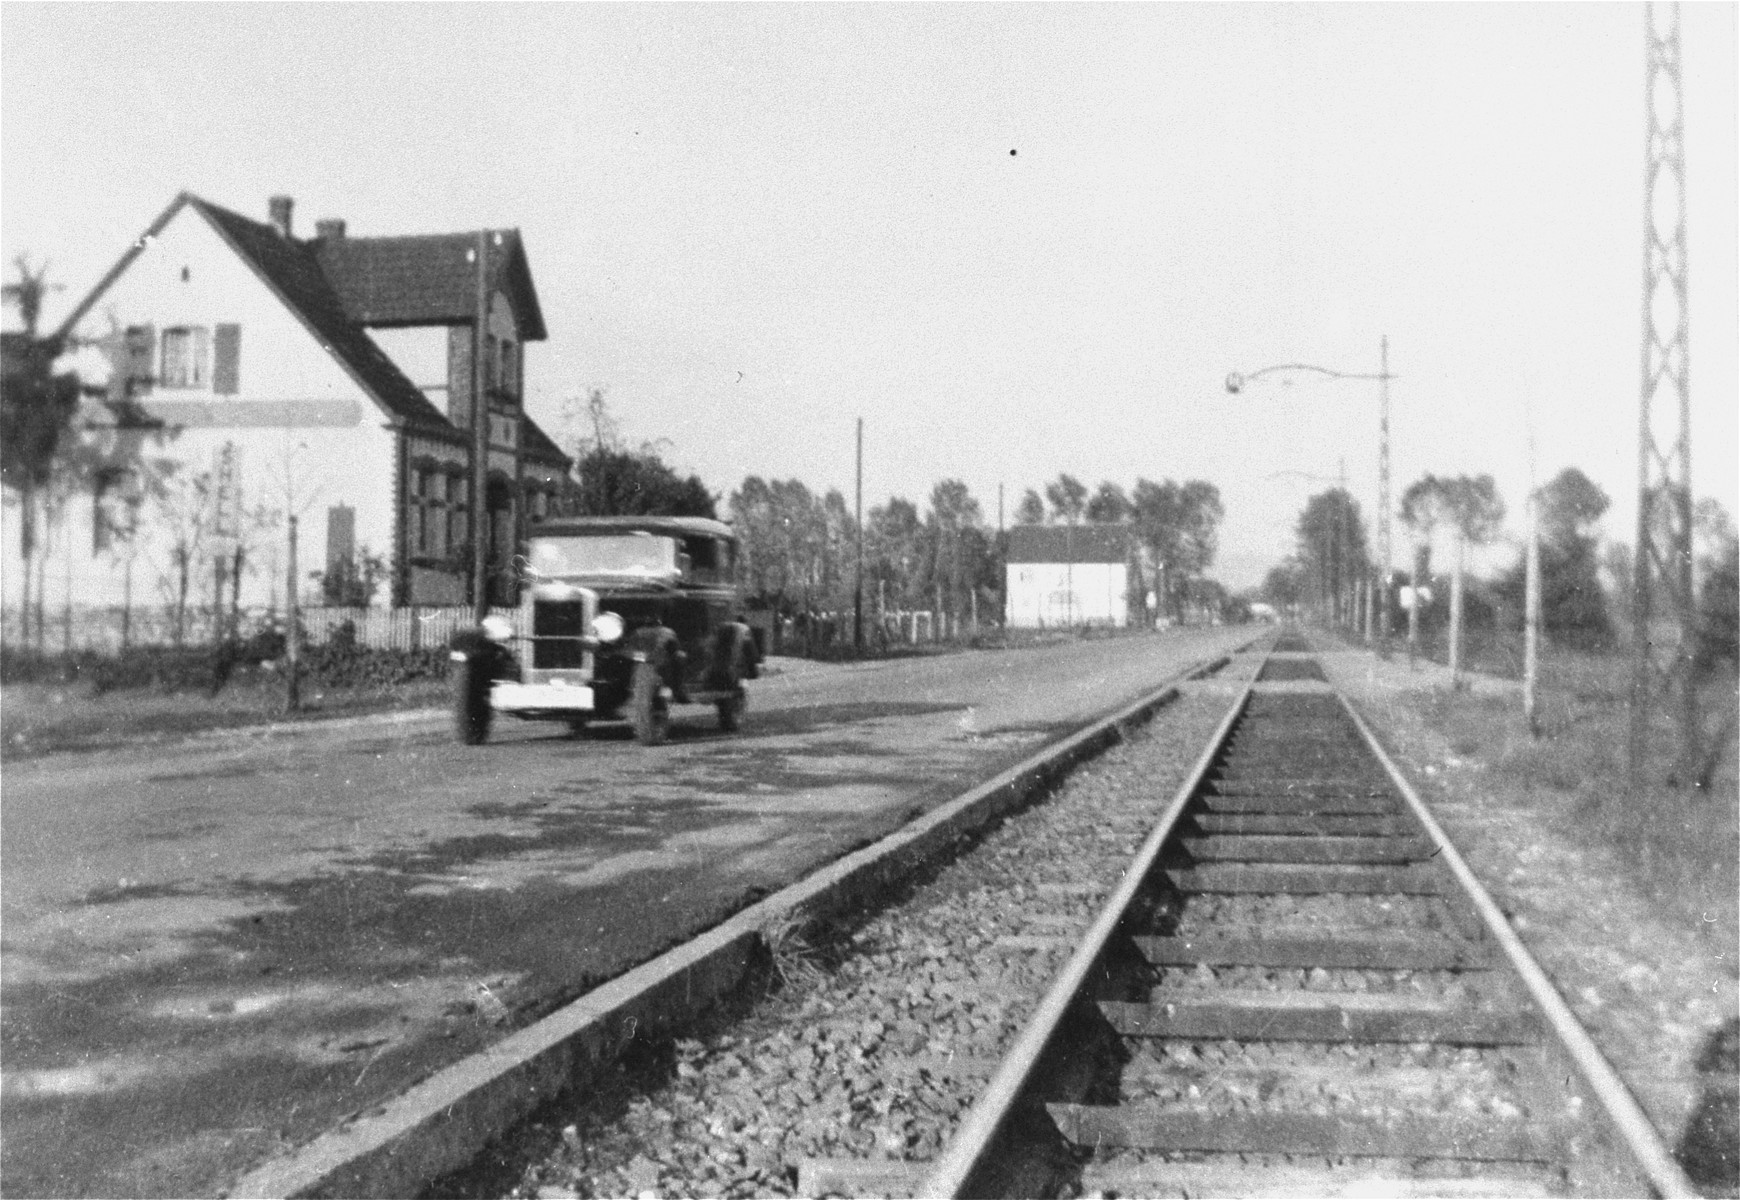 The Kusserow family home in Bad Lippspringe and the tram tracks in front of it.